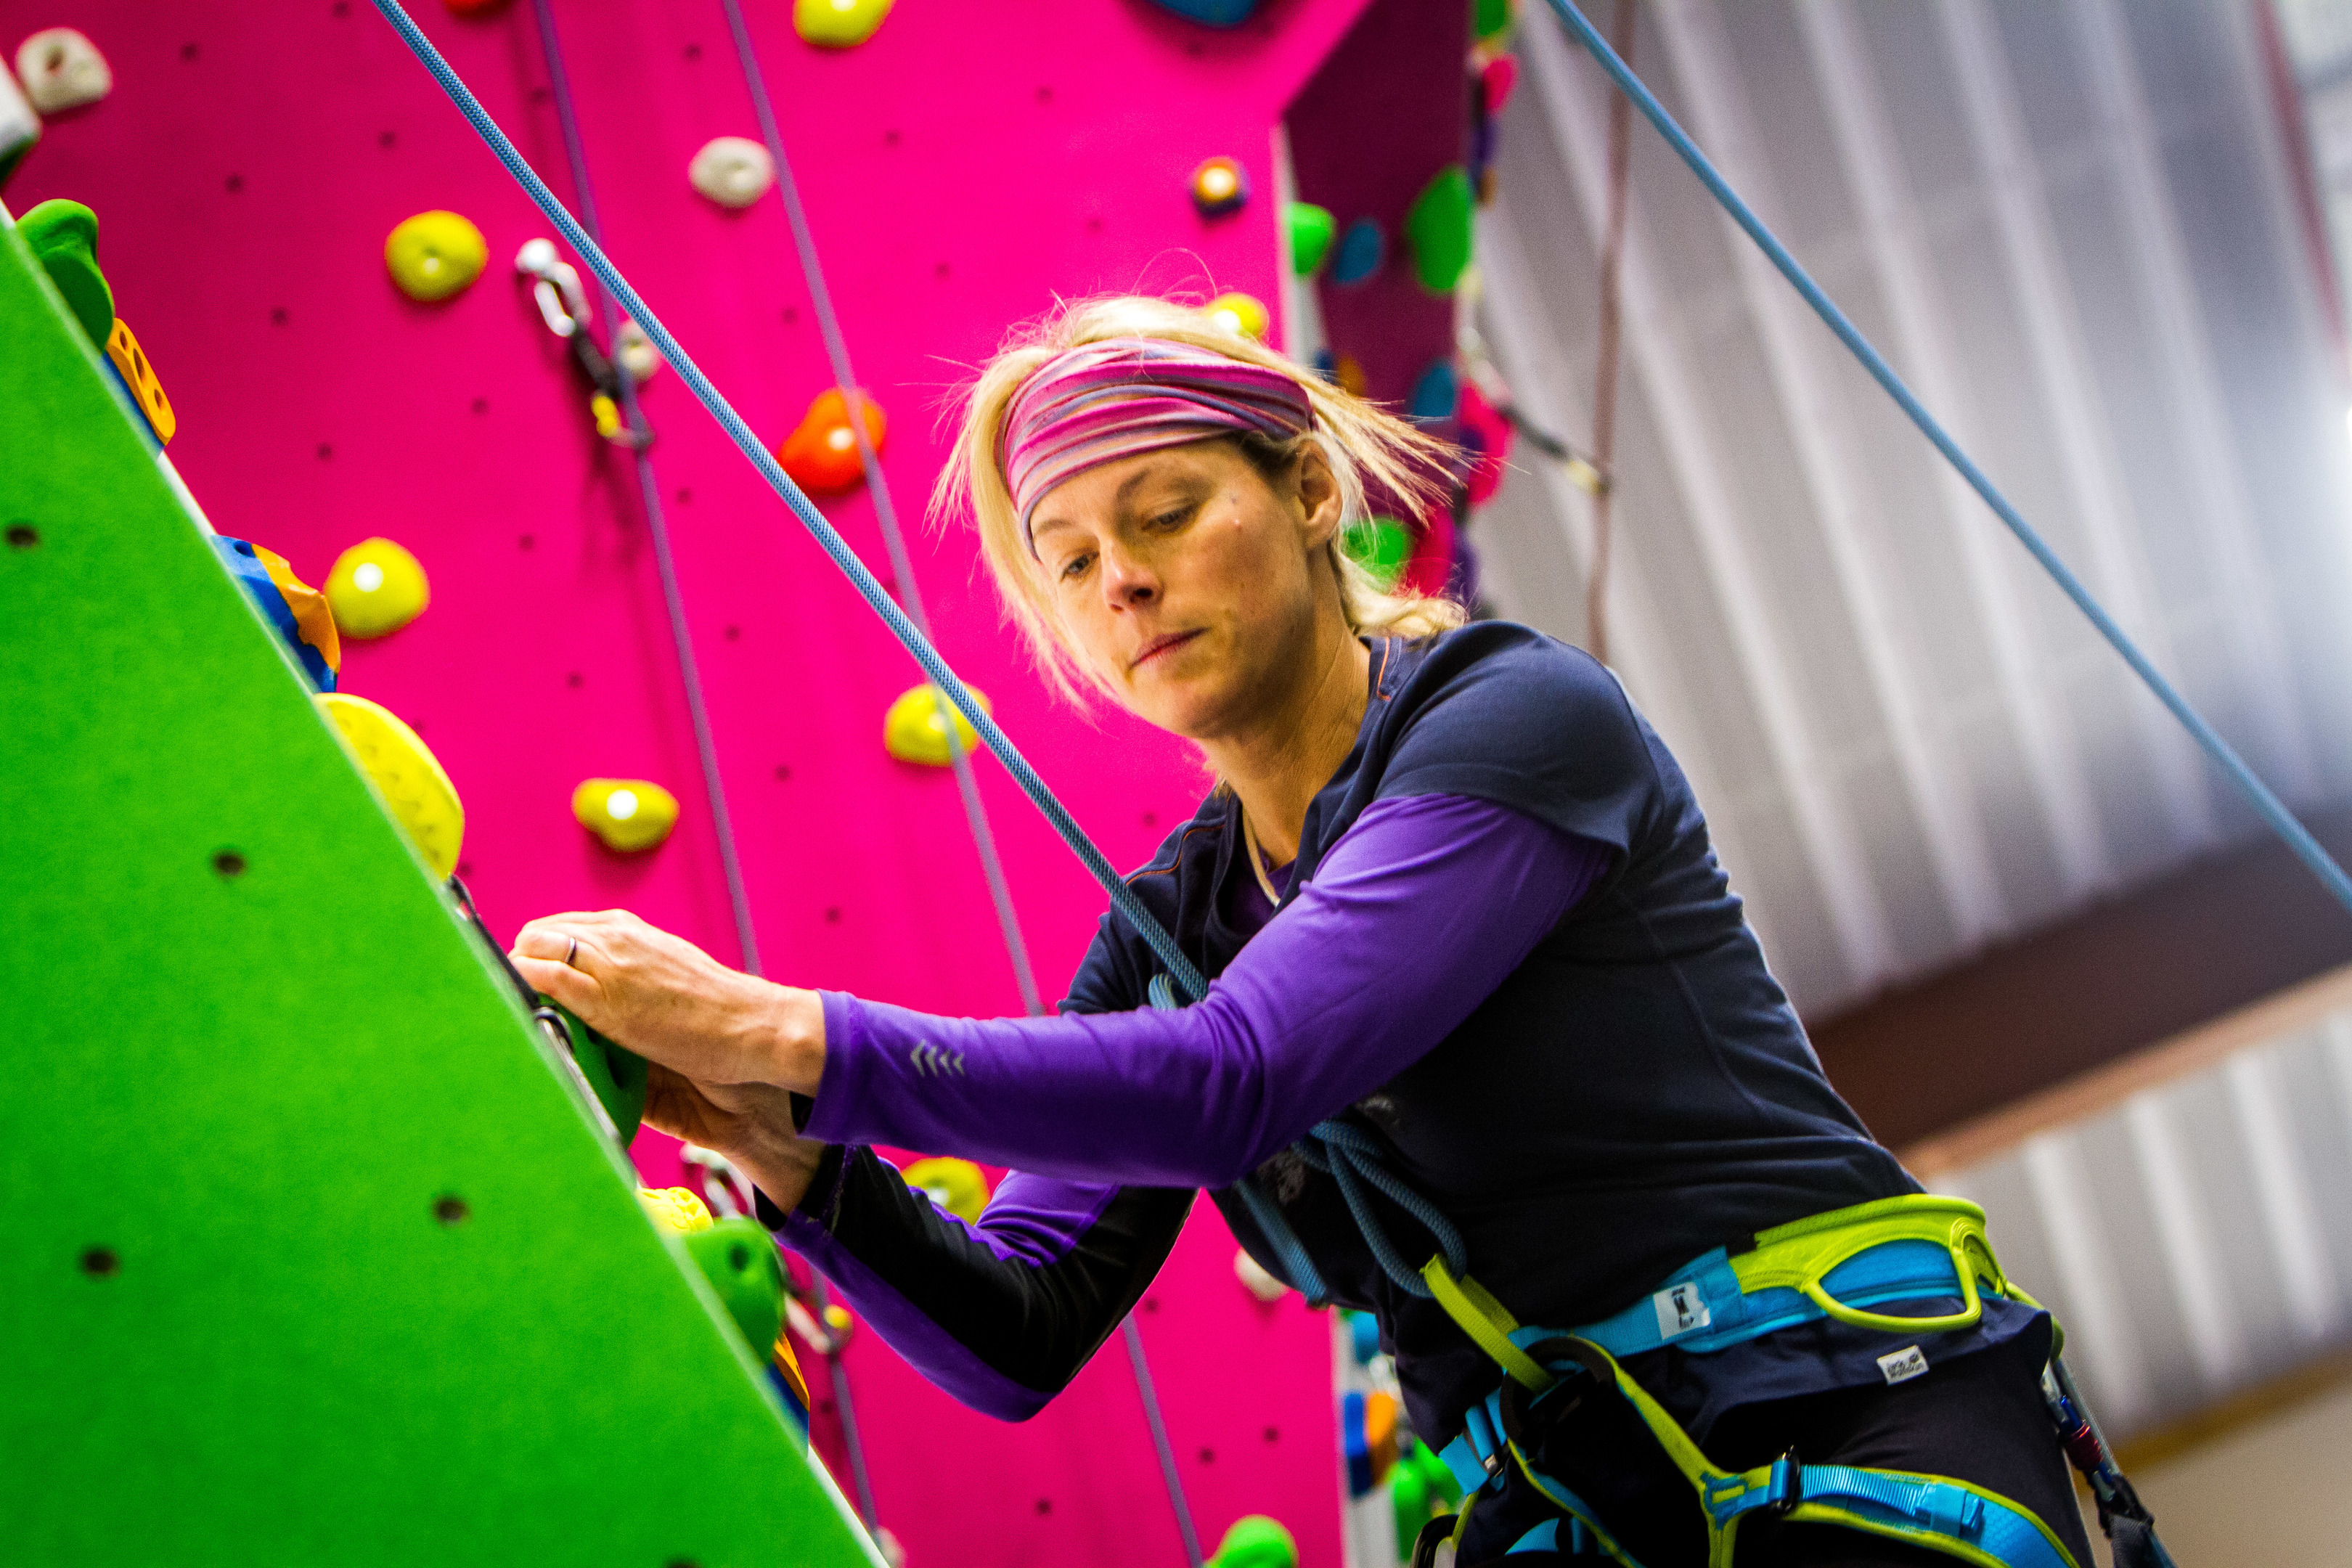 Polly Murray was one of the first to climb the new wall at Perth's Academy of Sport and Wellbeing.